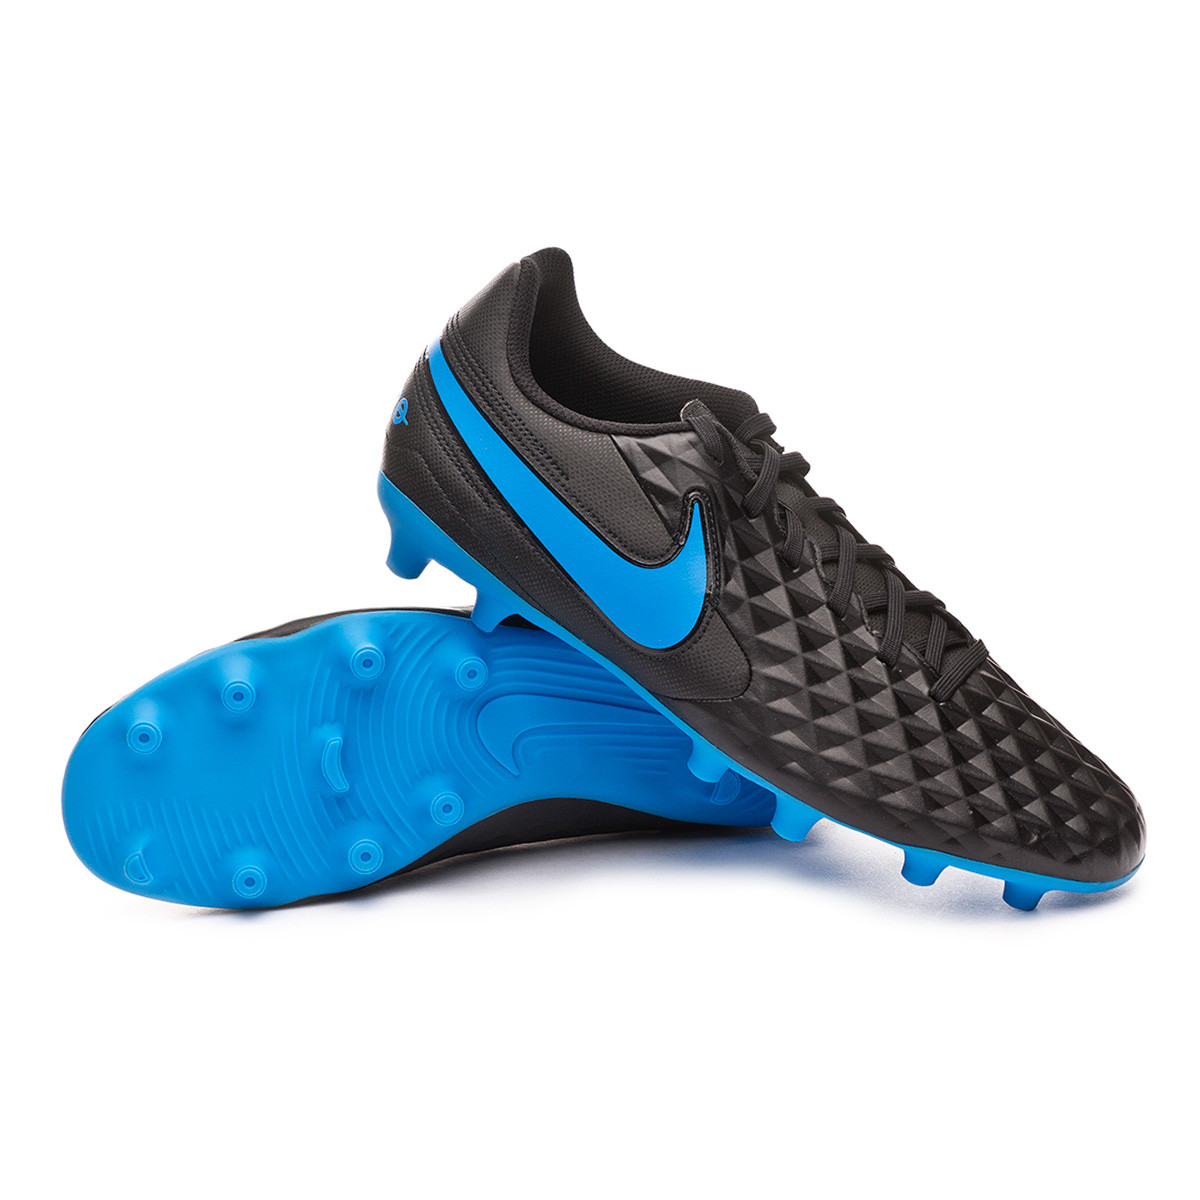 Saludar palma Lesionarse  Football Boots Nike Tiempo Legend VIII Club FG/MG Black-Blue hero -  Football store Fútbol Emotion